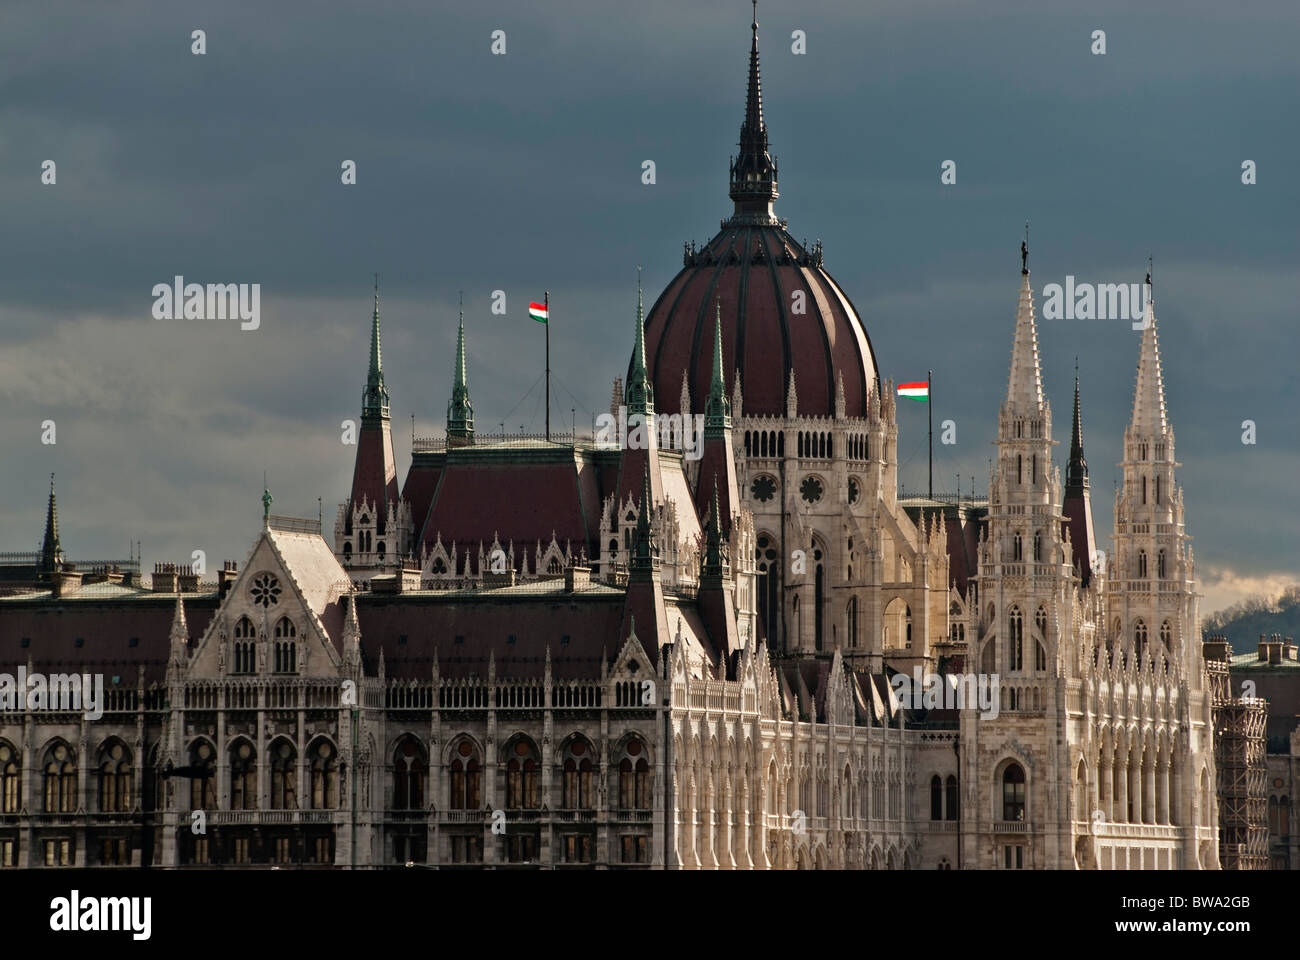 View of the parliament of Hungary by the Danube, Budapest, Hungary, Europe - Stock Image